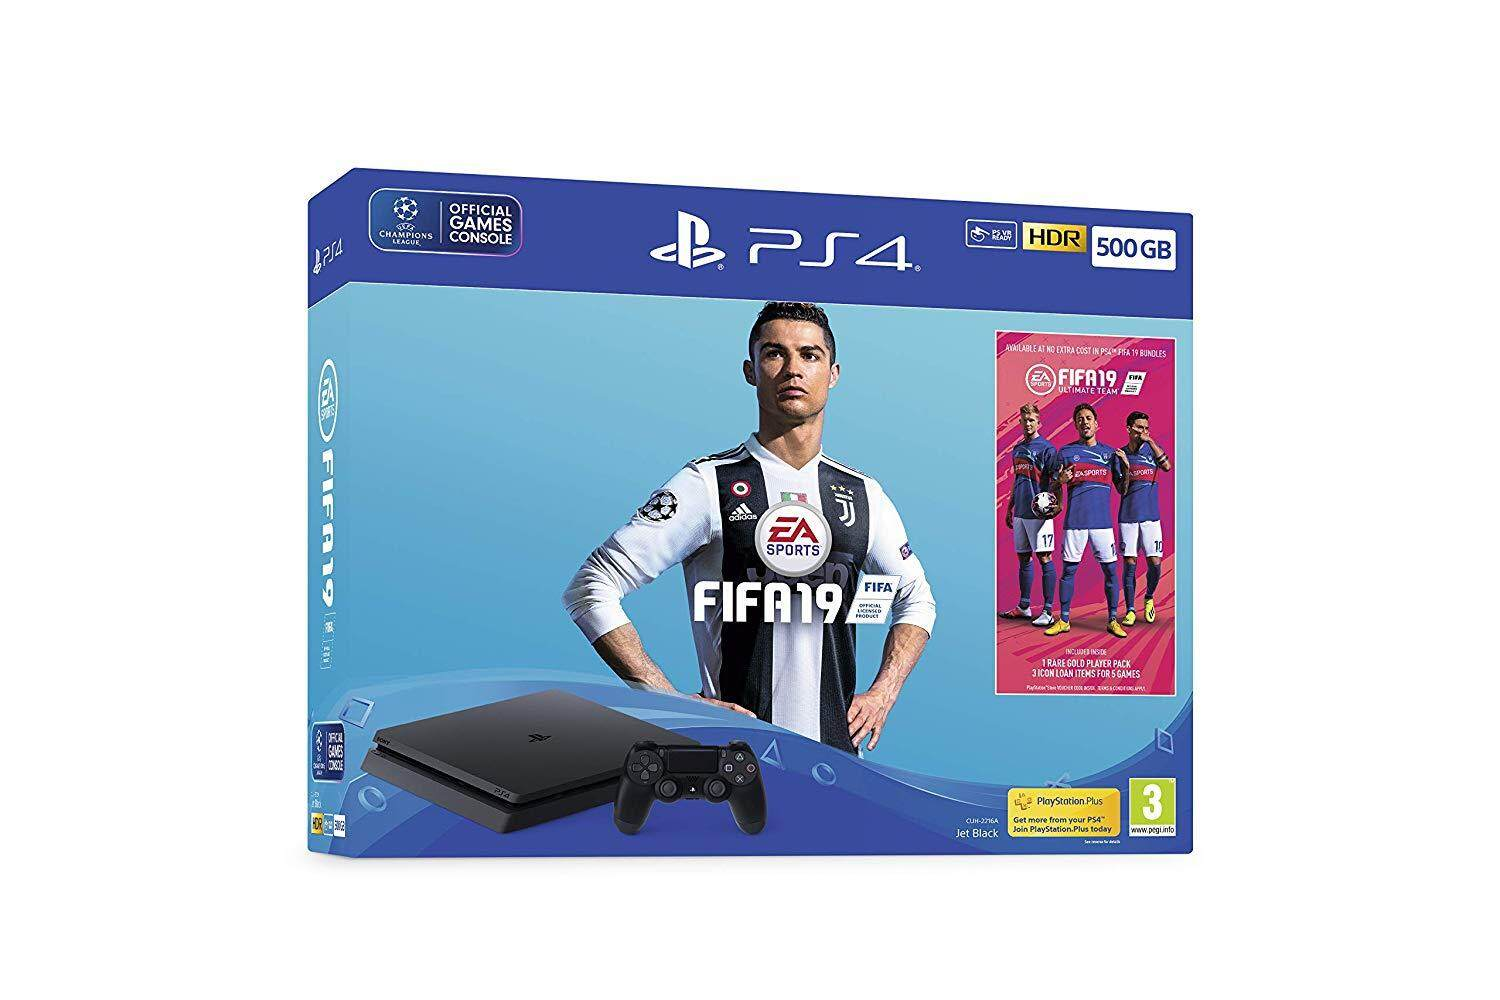 PS4 SLIM 500GB FIFA 19 ASIA BUNDLE SET CHAMPION EDITION [ PRE ORDER 1/10/2018]